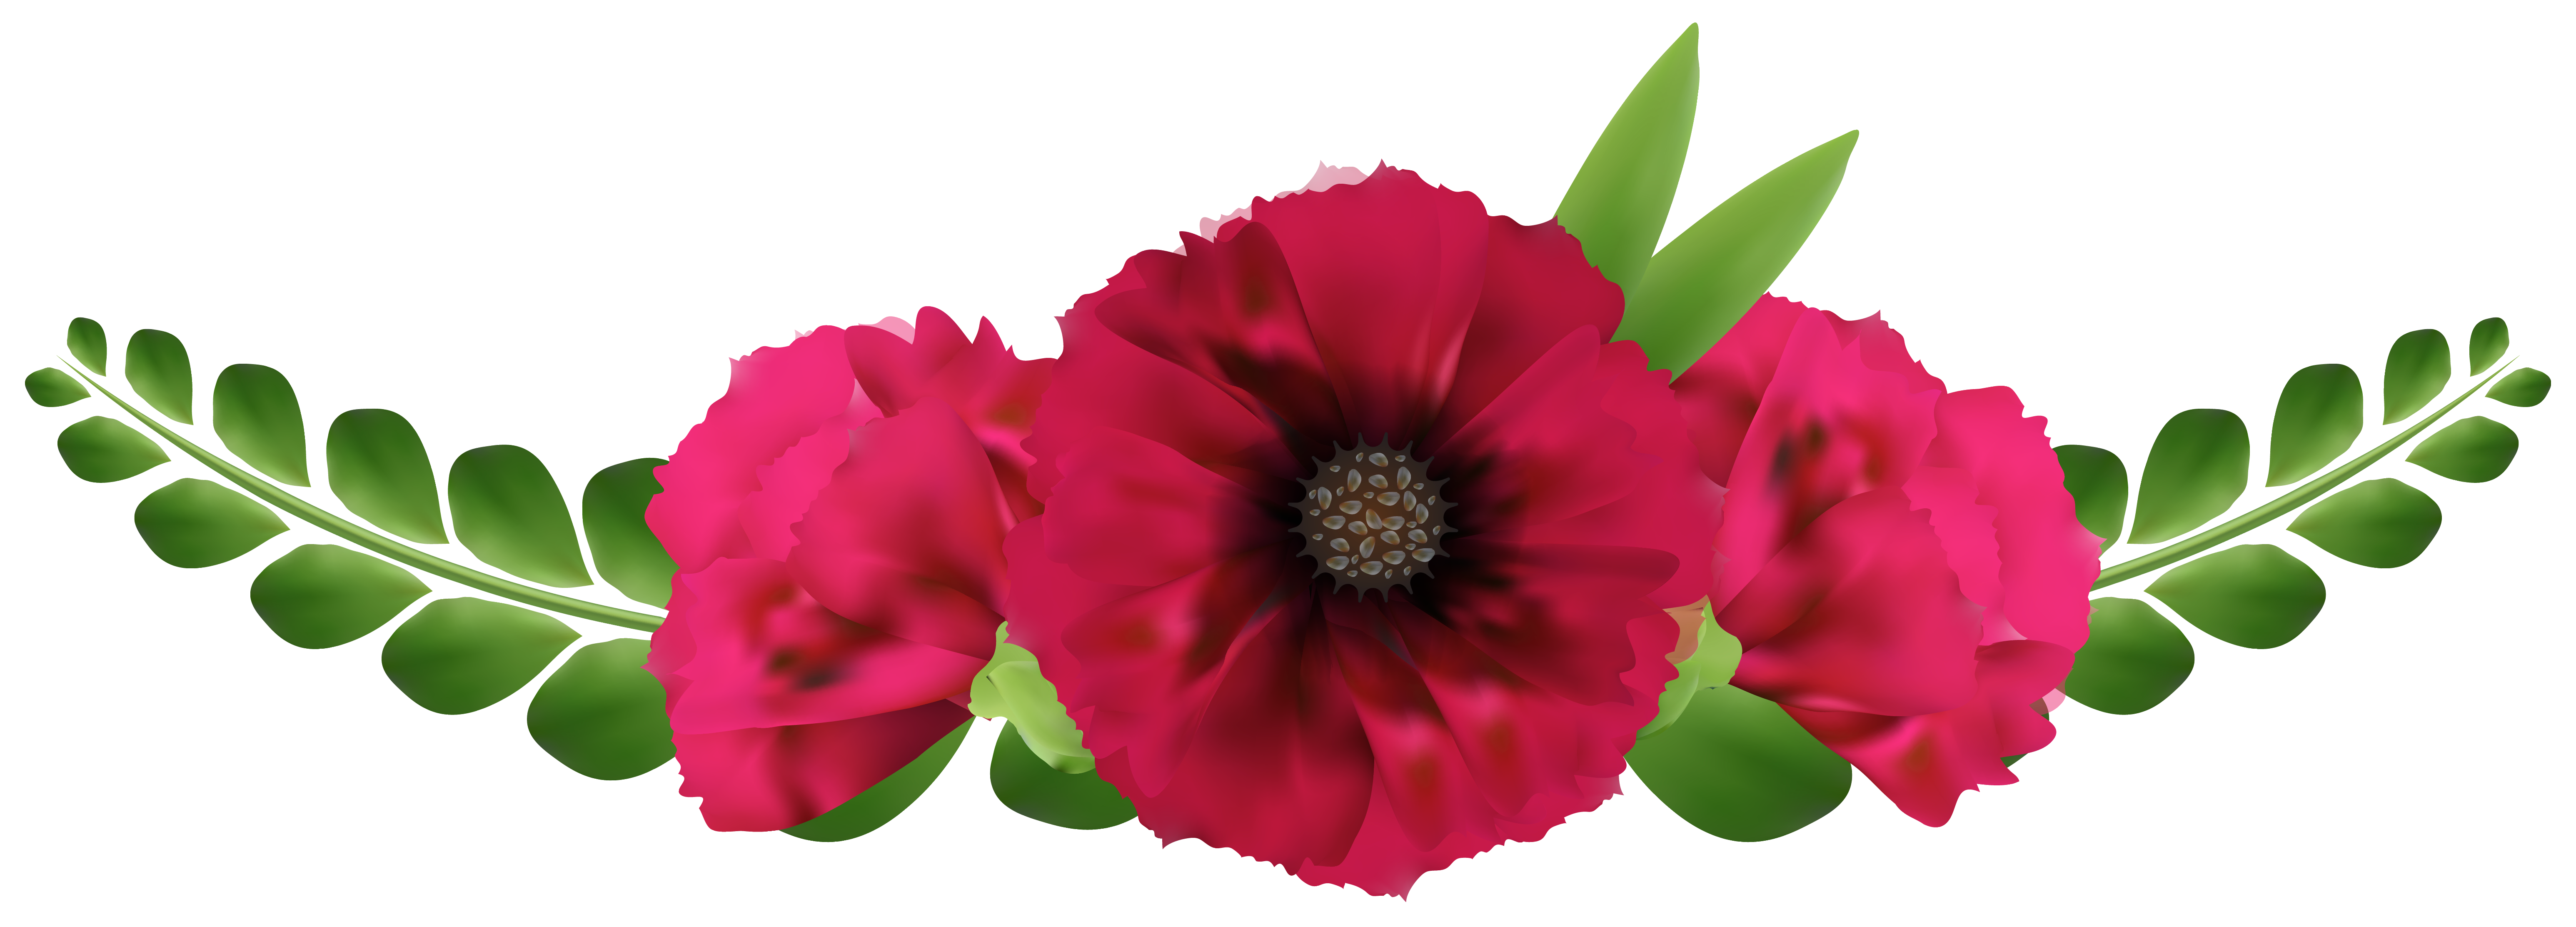 Flower png. Beautiful clipart at getdrawings